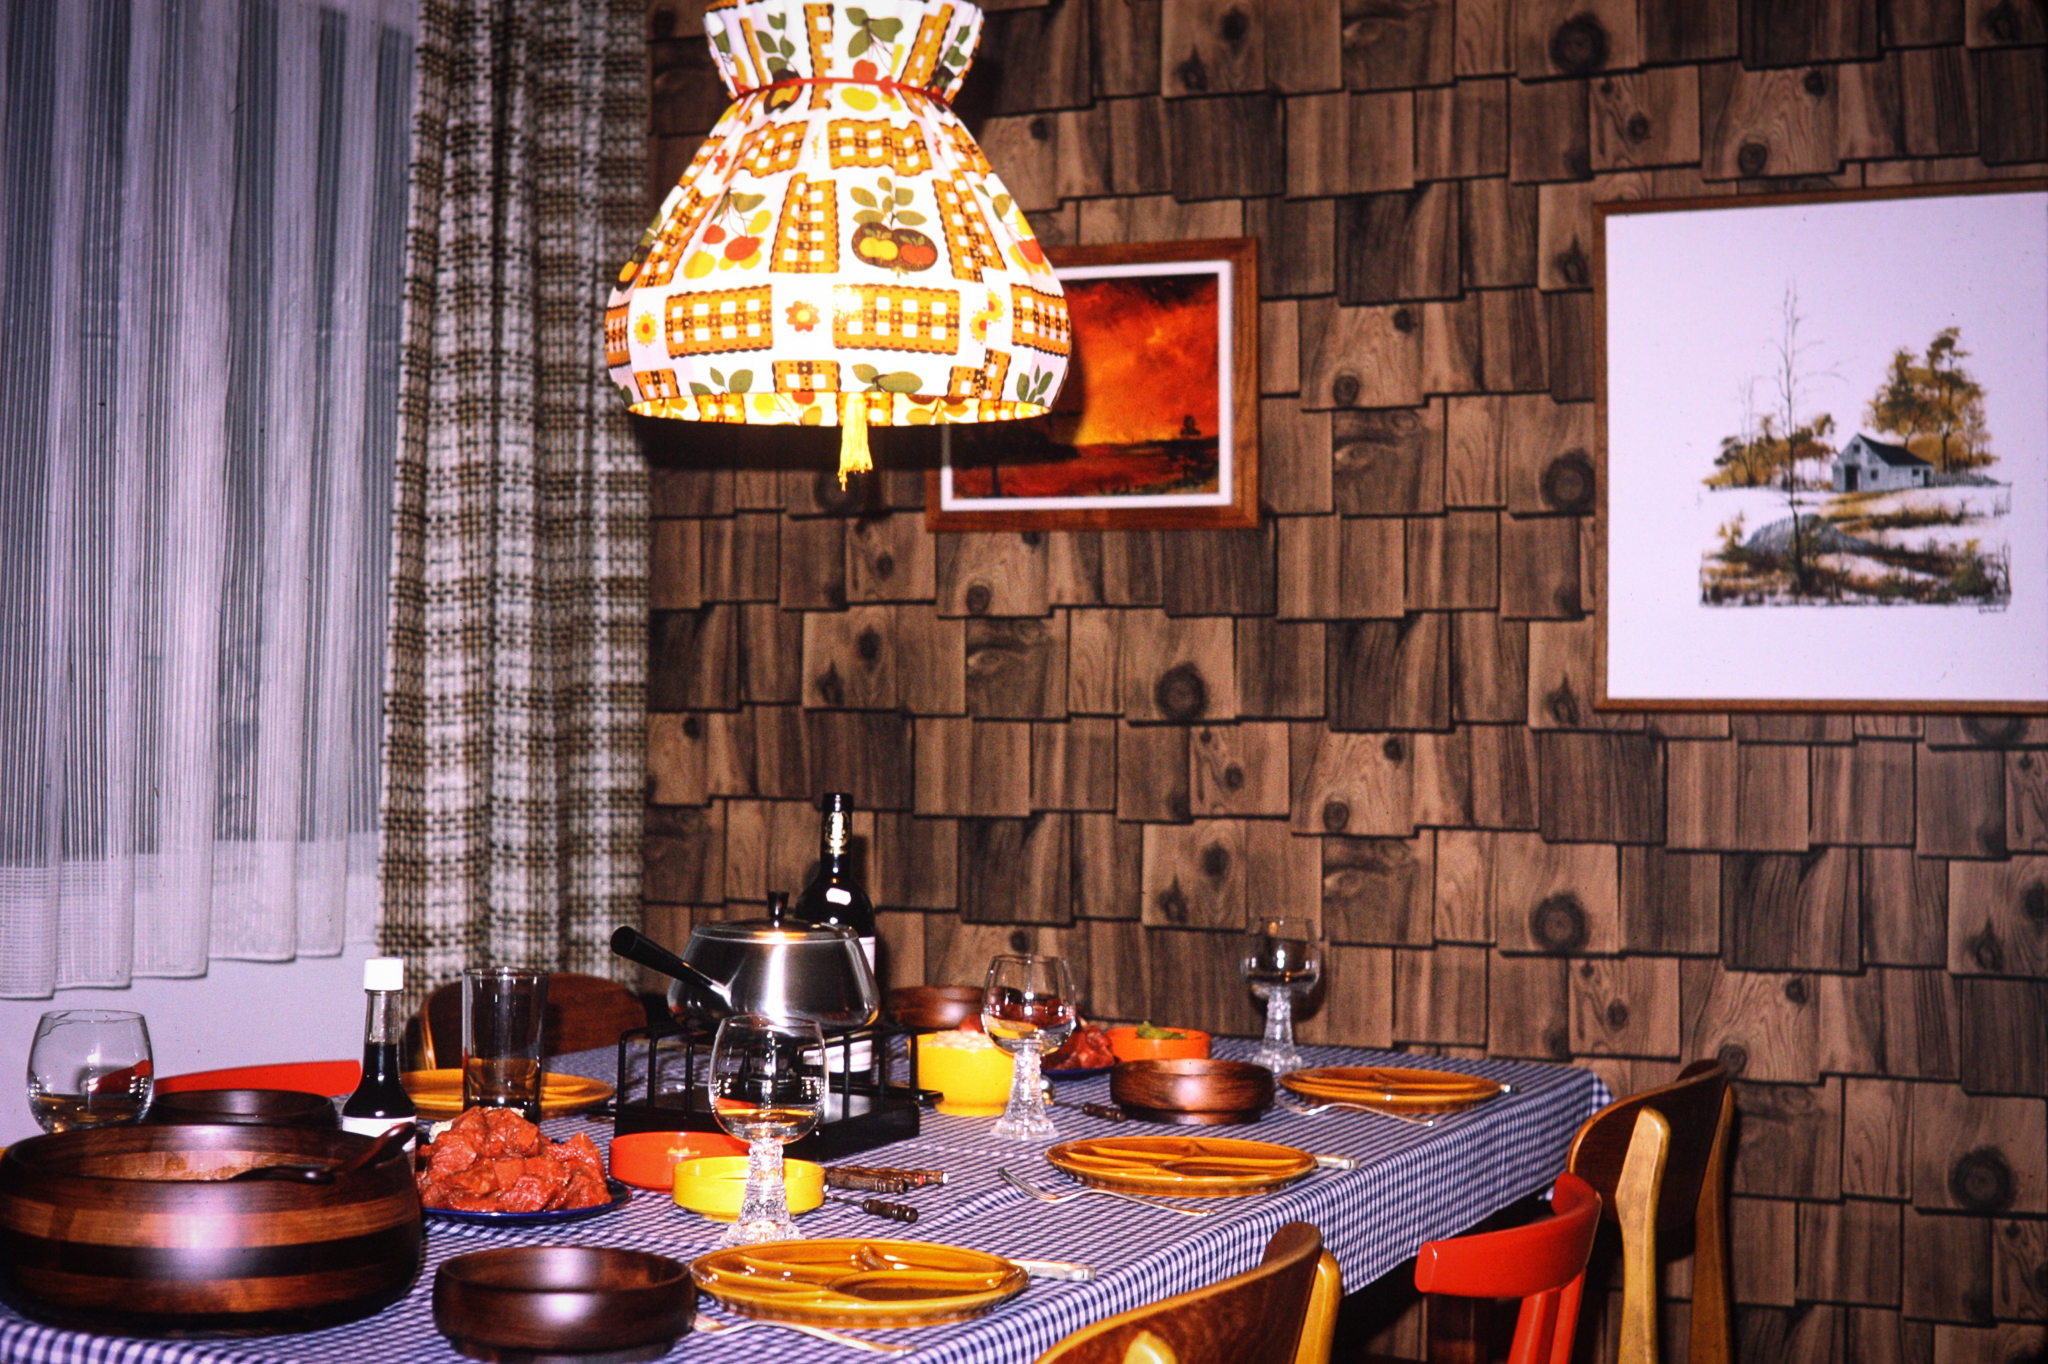 "I grew up in apartments which we rented until my parents purchased this condo in Mississauga. We would spend holidays in rented cabins in cottage country and my mother loved the cozy cabin feel so she created it in our dining space. The ""wood"" wall is actually wallpaper which never intimidated my parents. I think we had wallpaper everywhere we lived! You can see my parents European influence here for sure! They were both German immigrants."